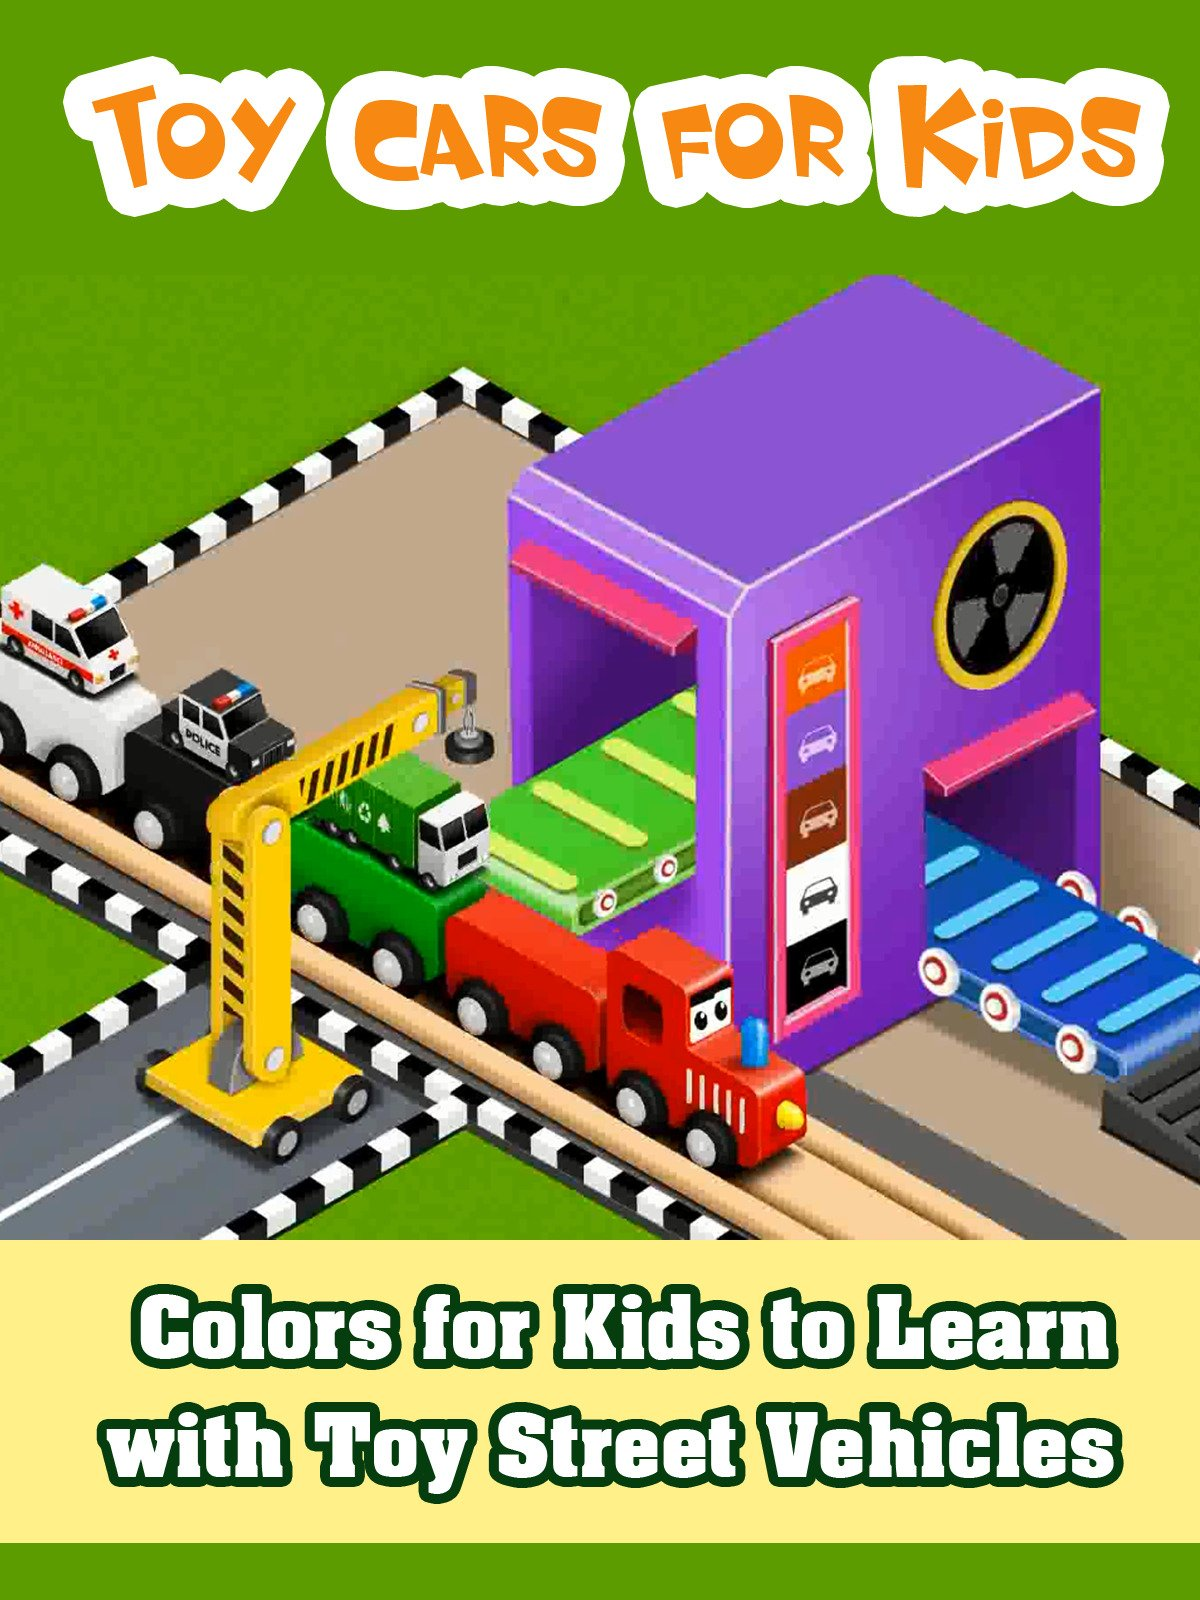 Colors for Kids to Learn with Toy Street Vehicles